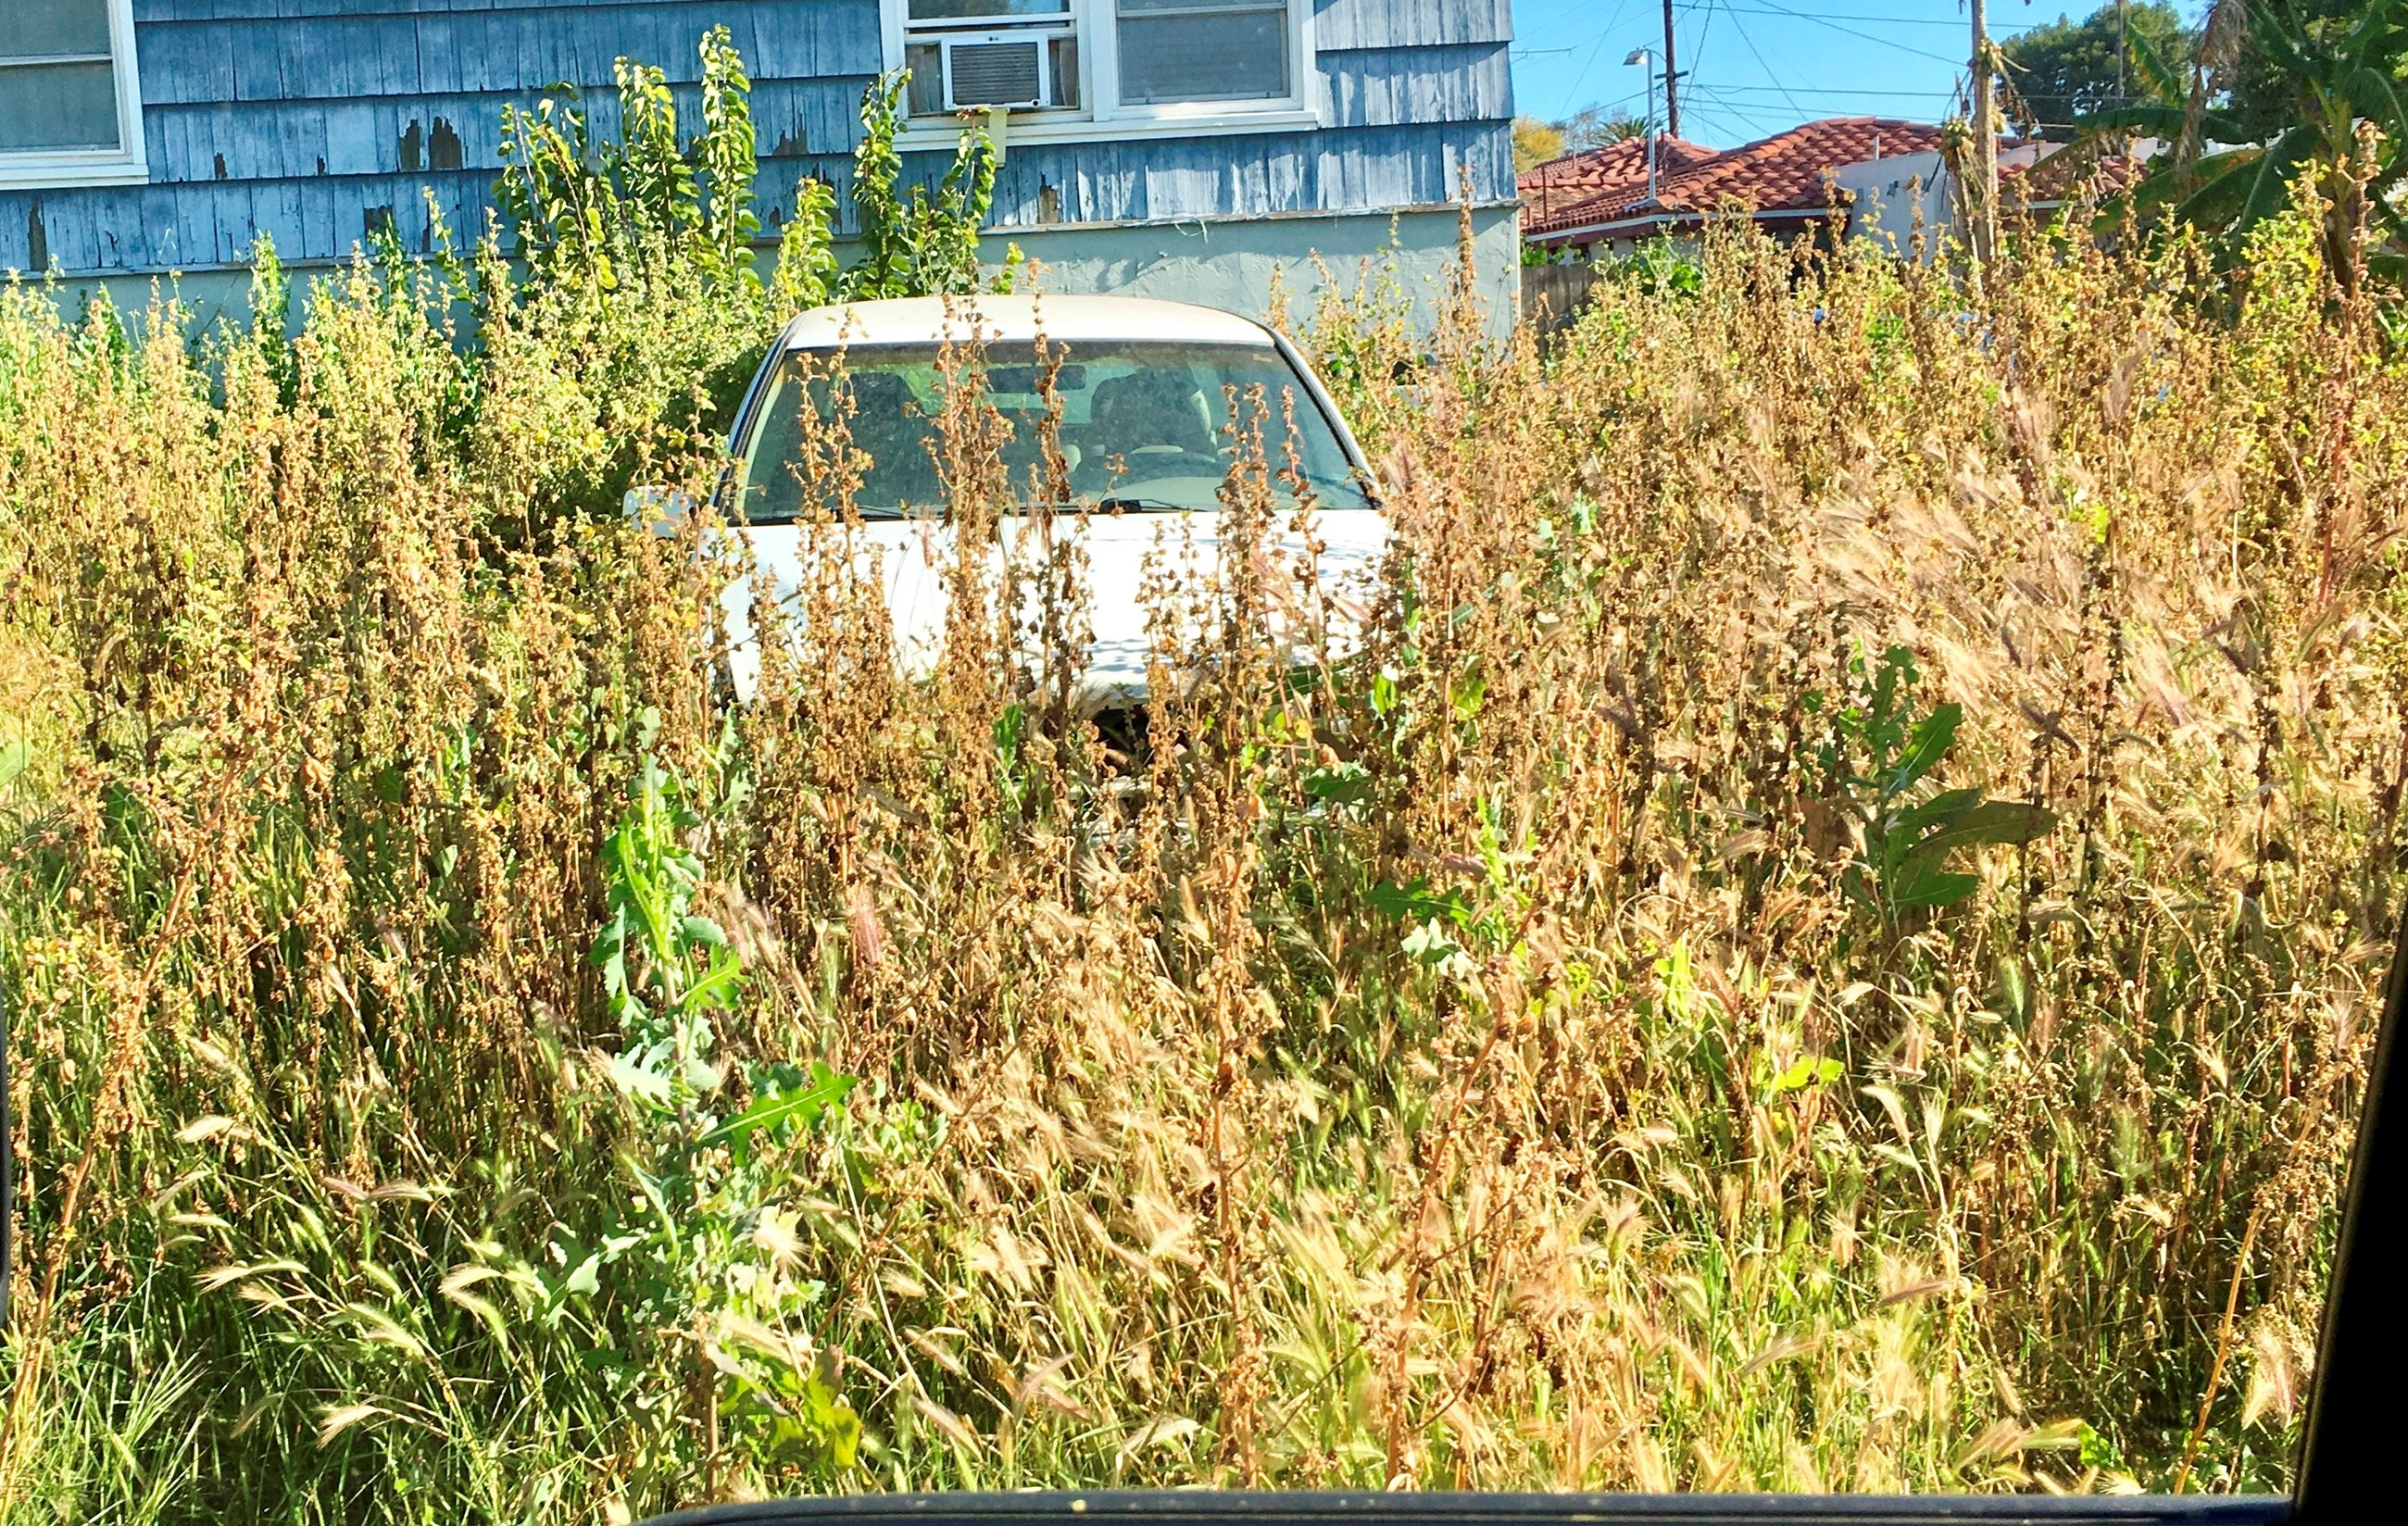 Weeds on residential lot surrounding parked car